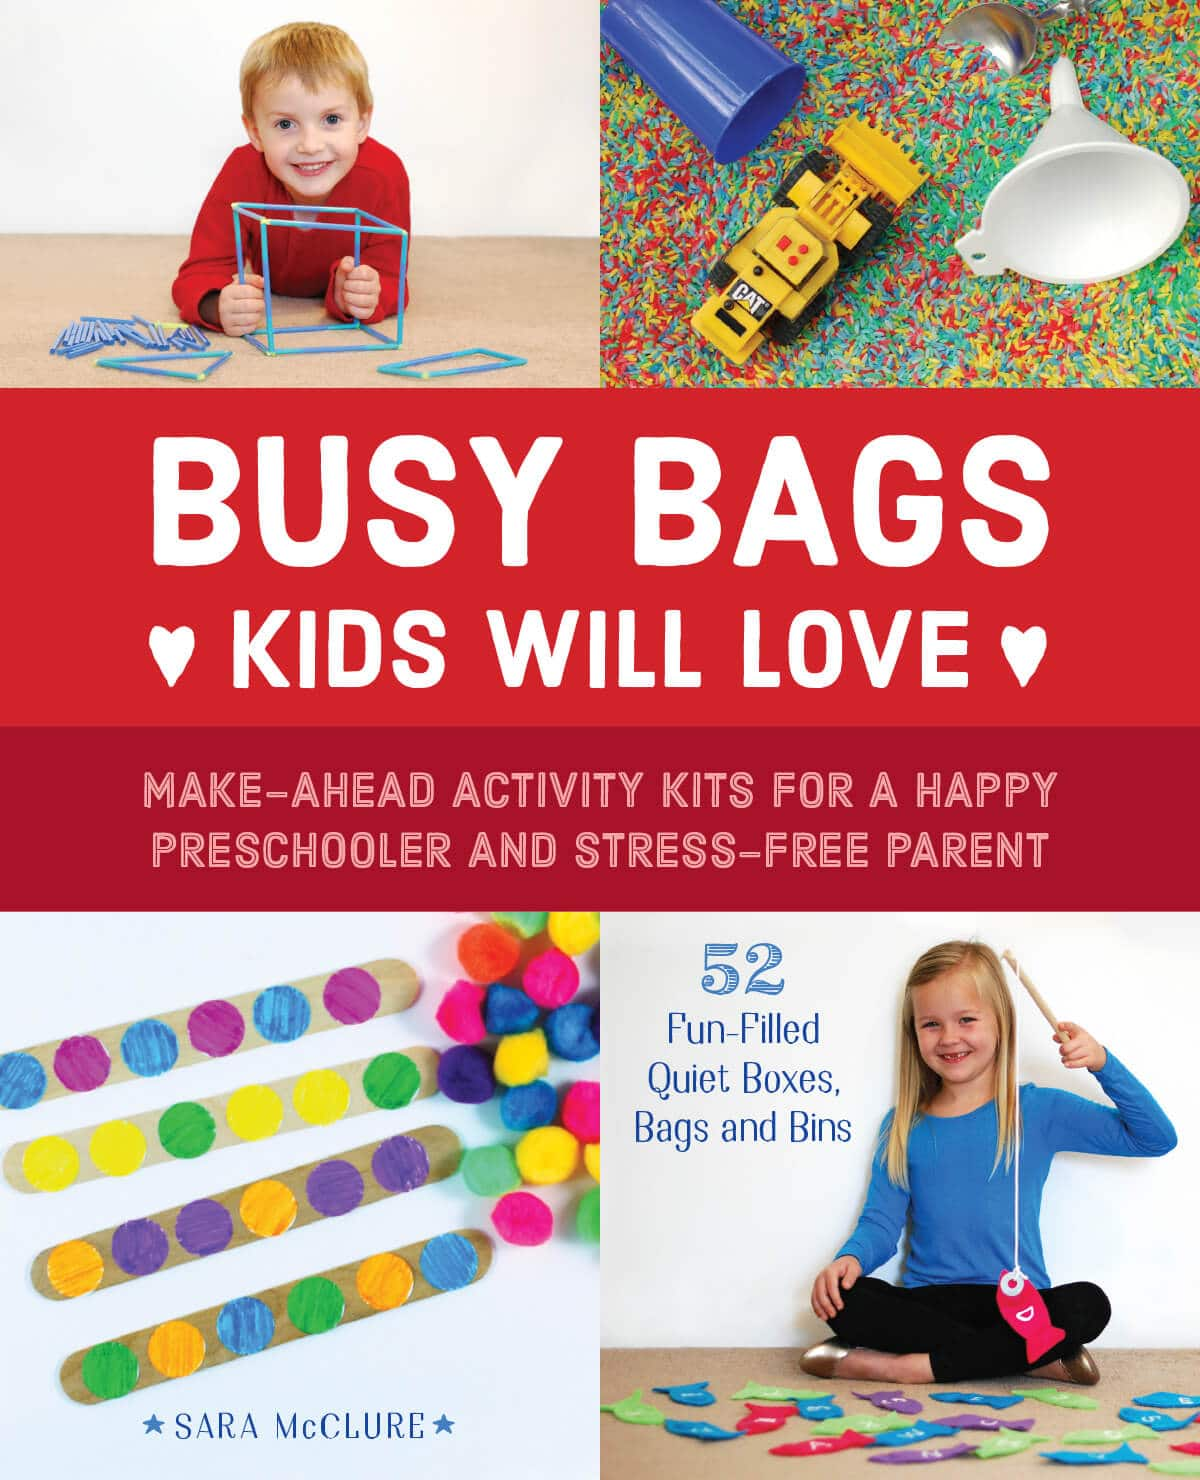 Busy Bags Kids Will Love by Sara McClure.